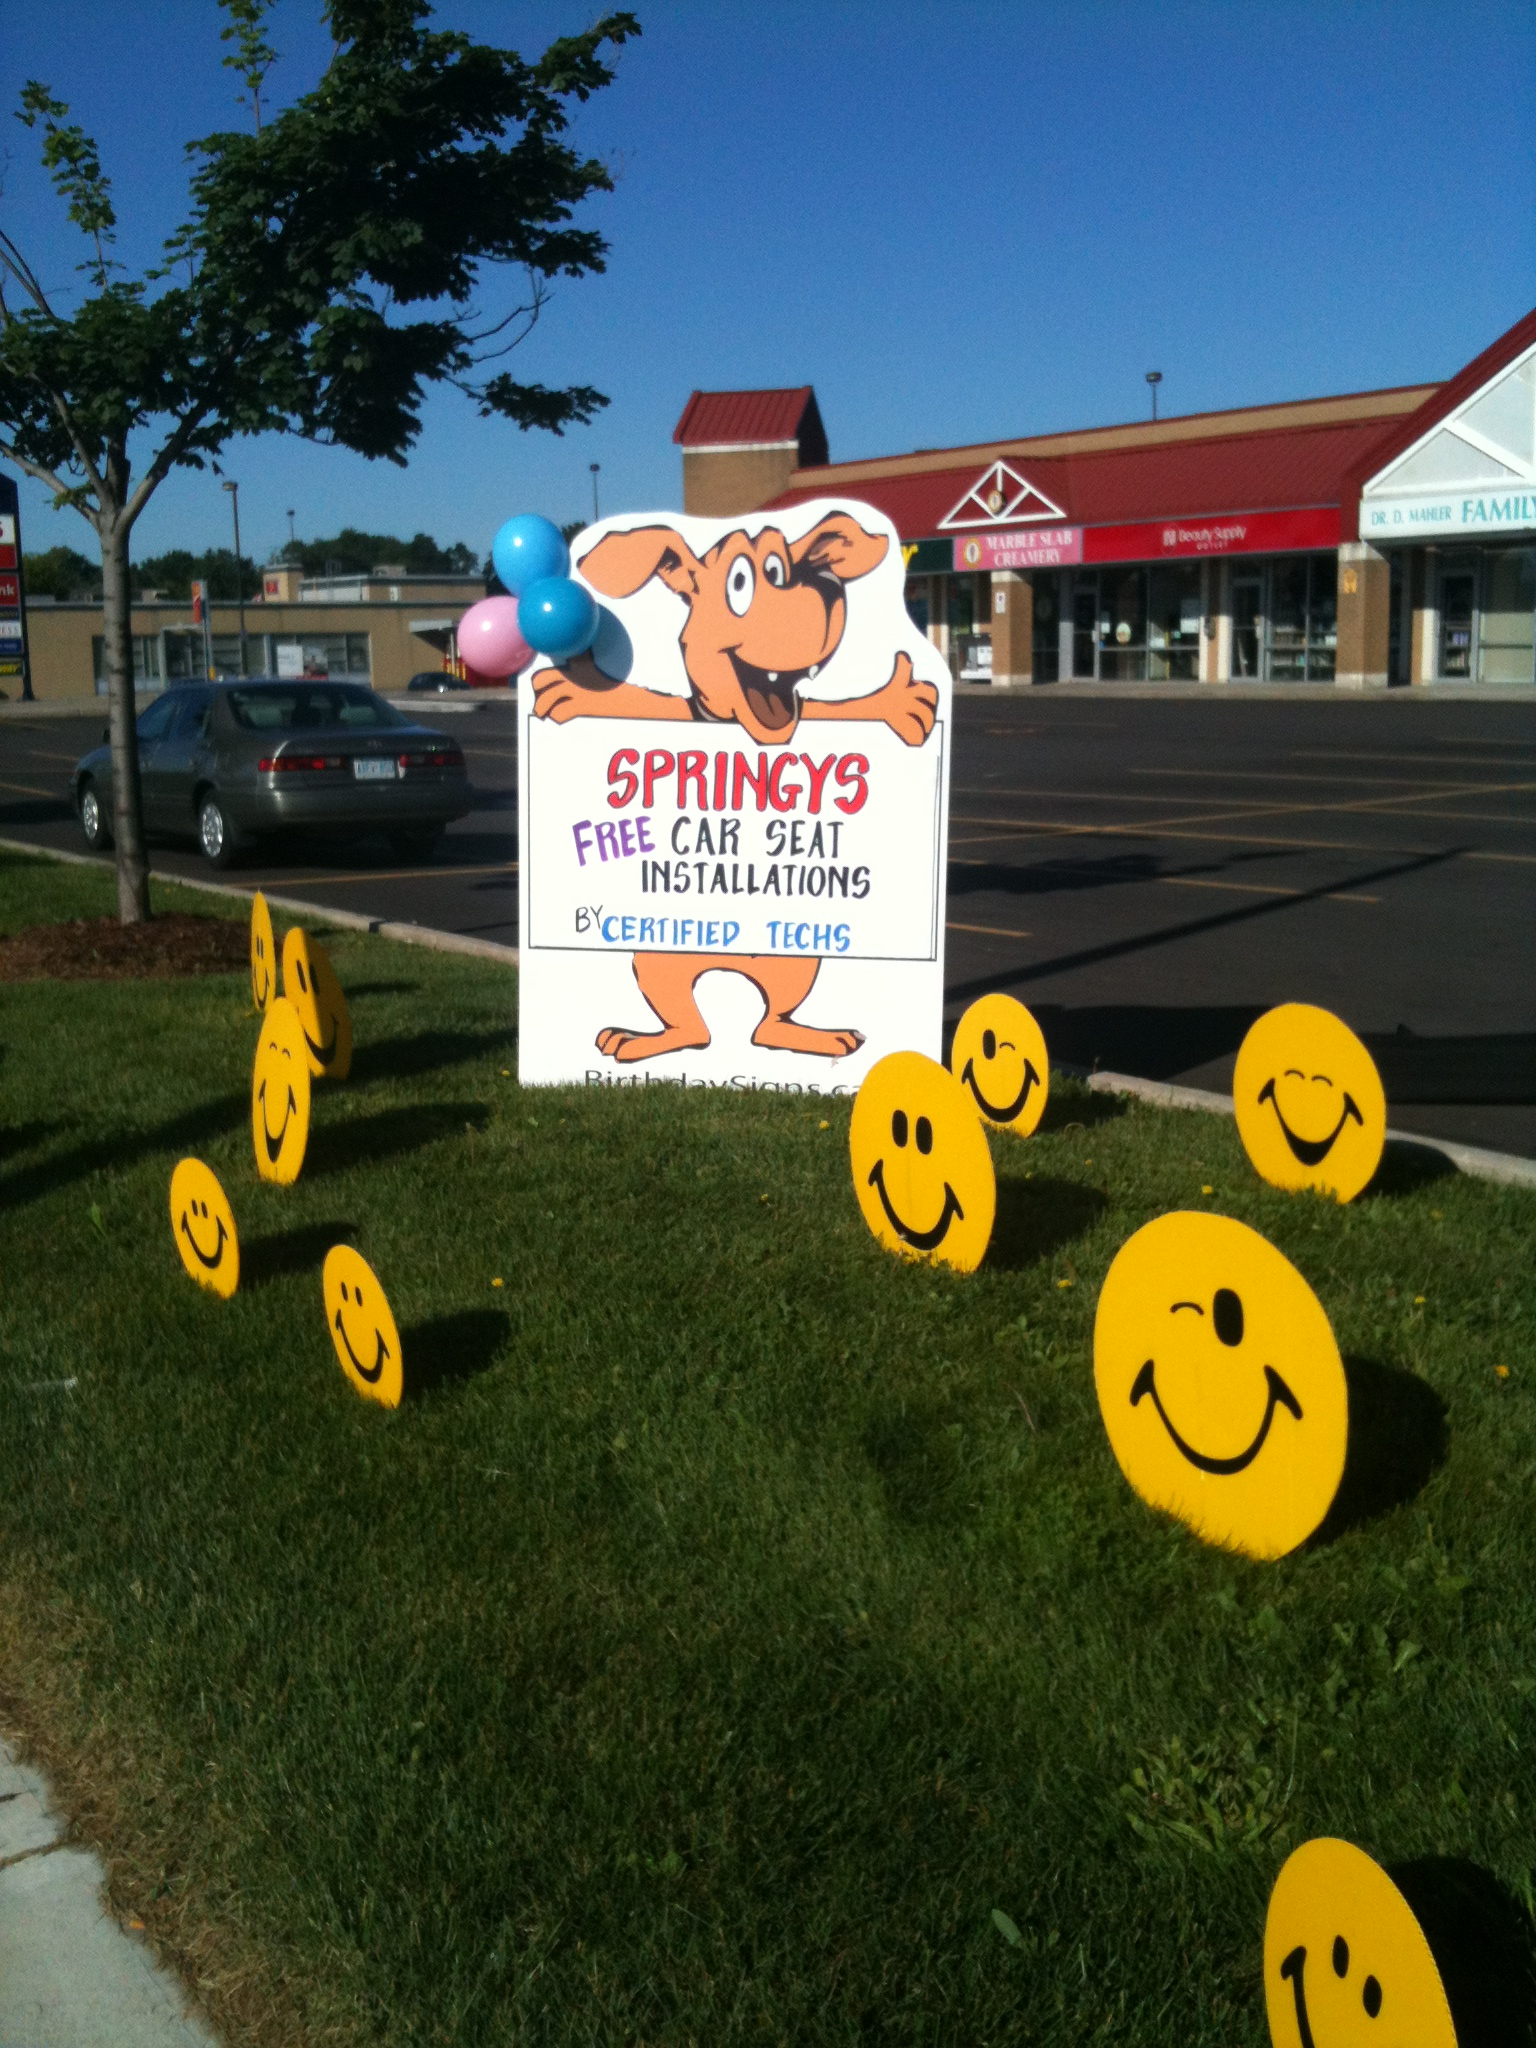 Giant Dog sign for a Store event with Smiley faces